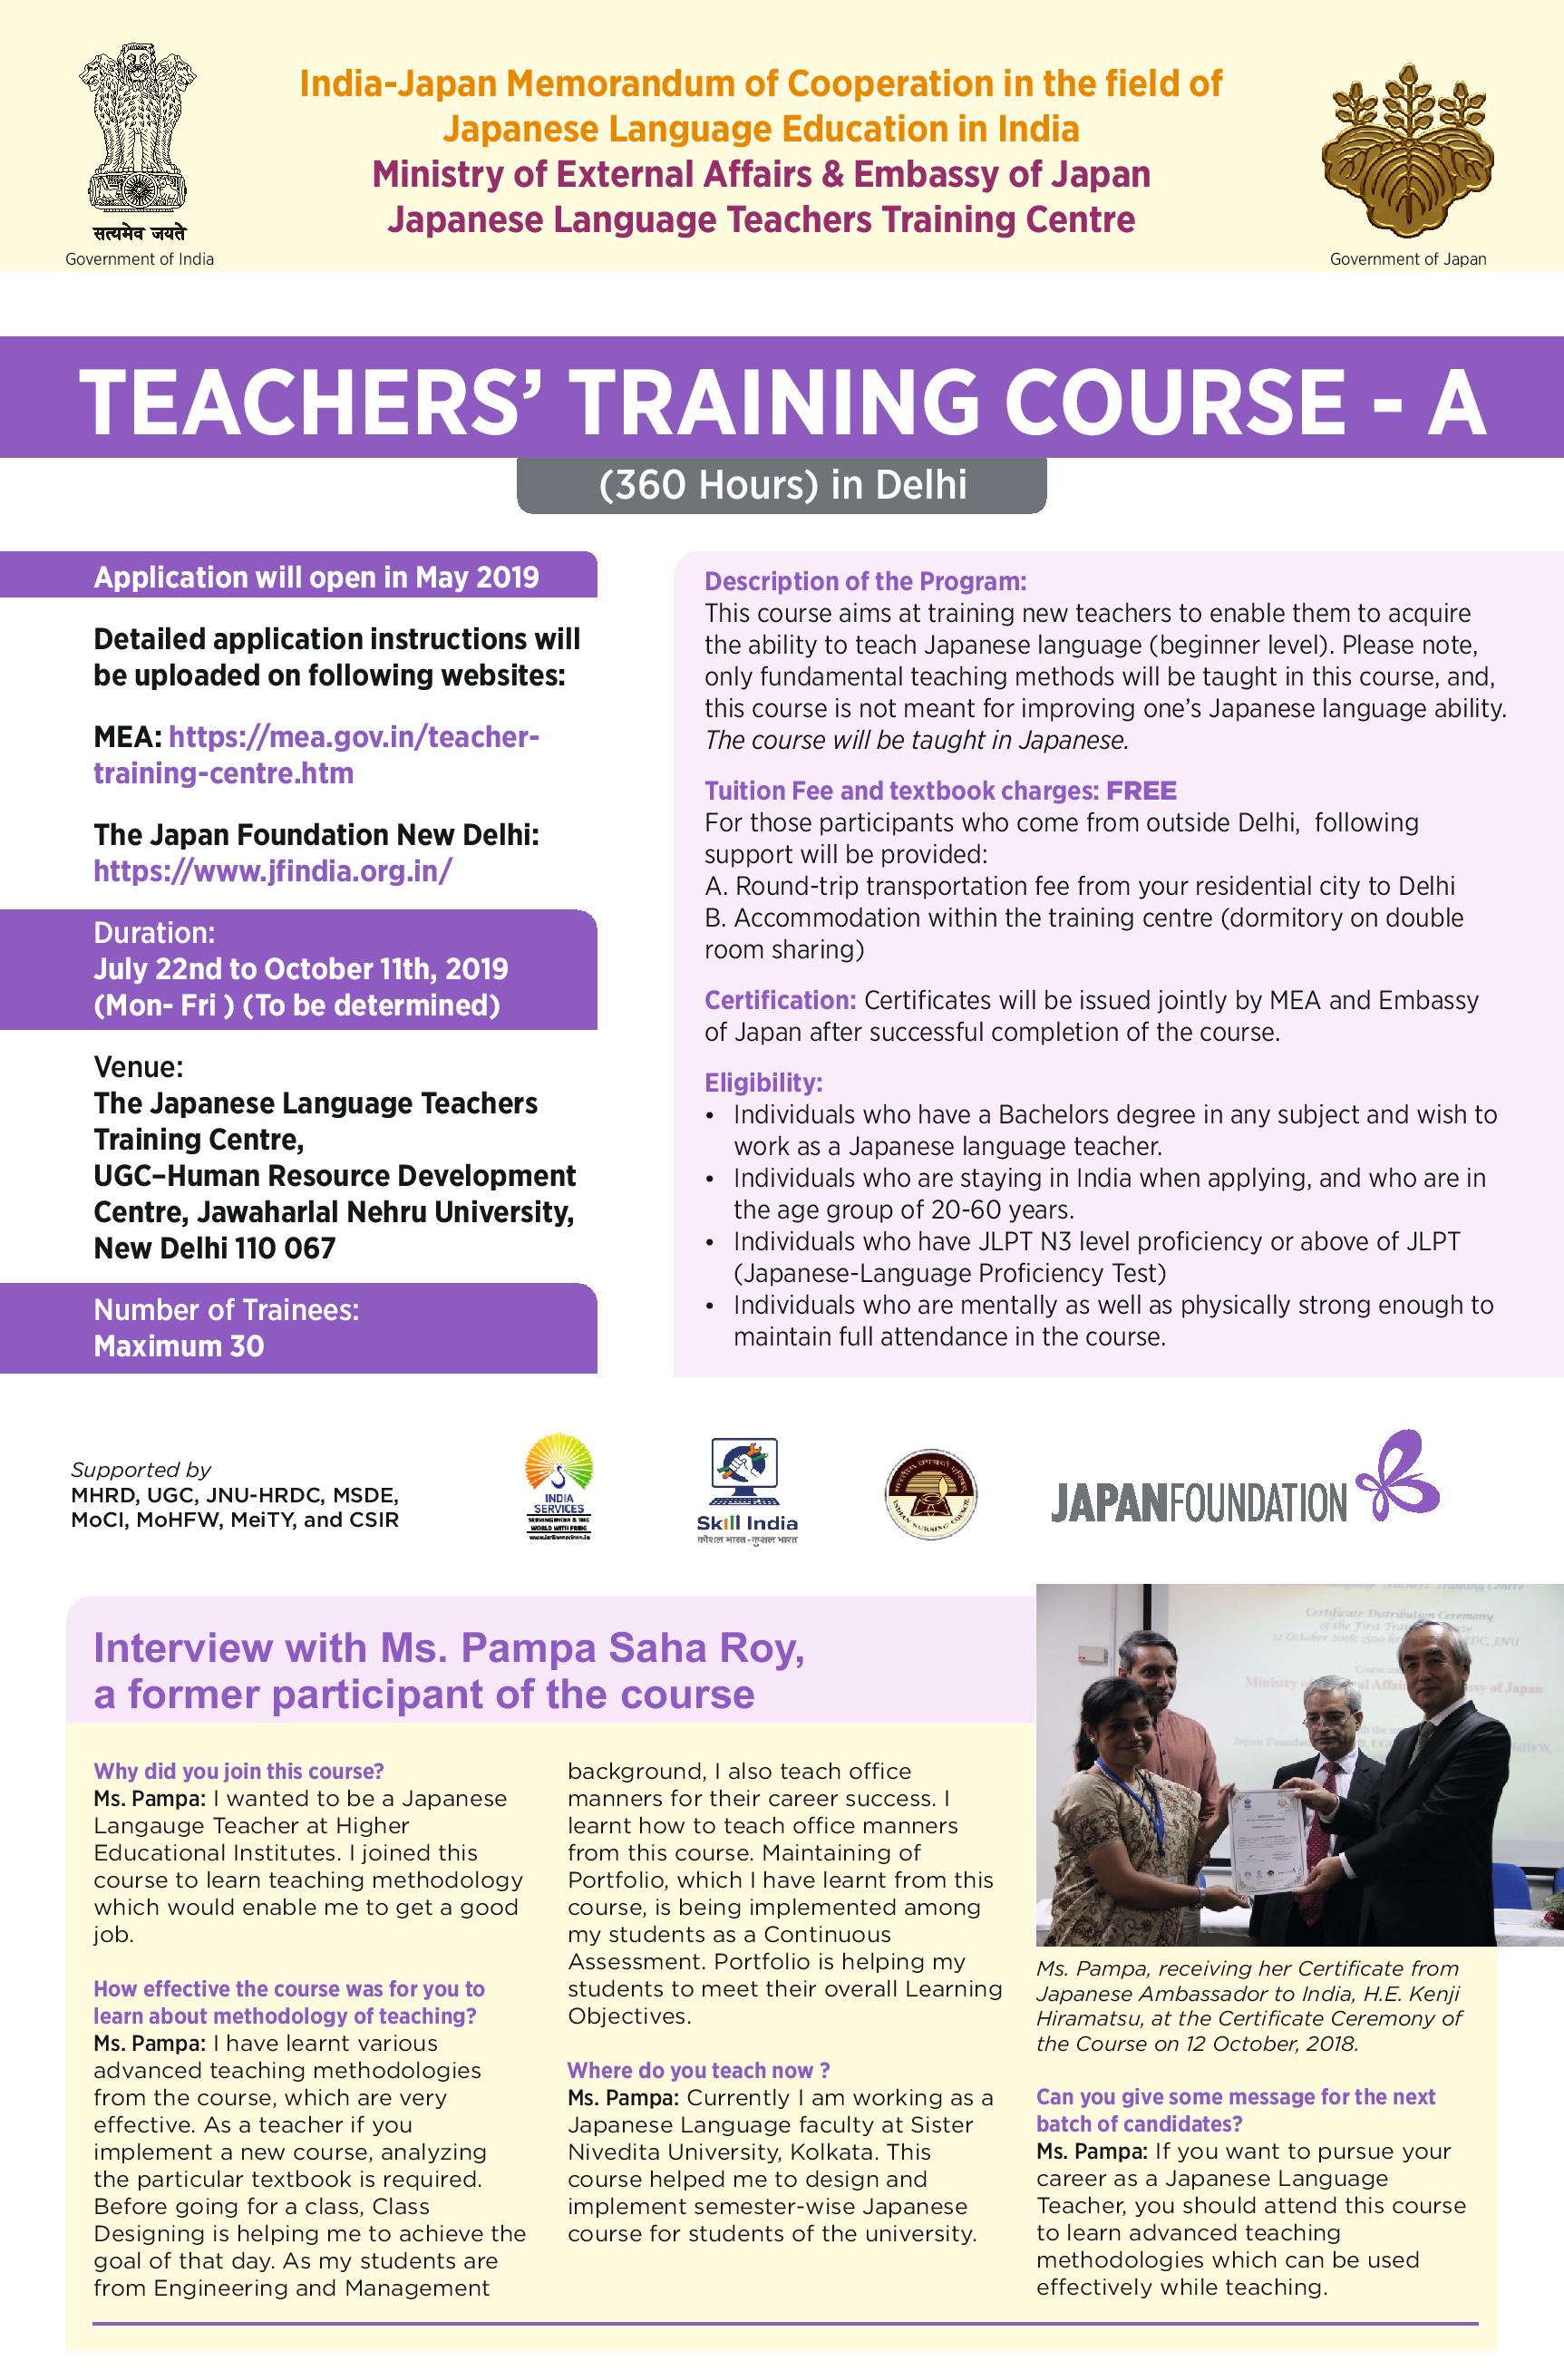 ~Teachers Training Course A~(360 Hours) in Delhi